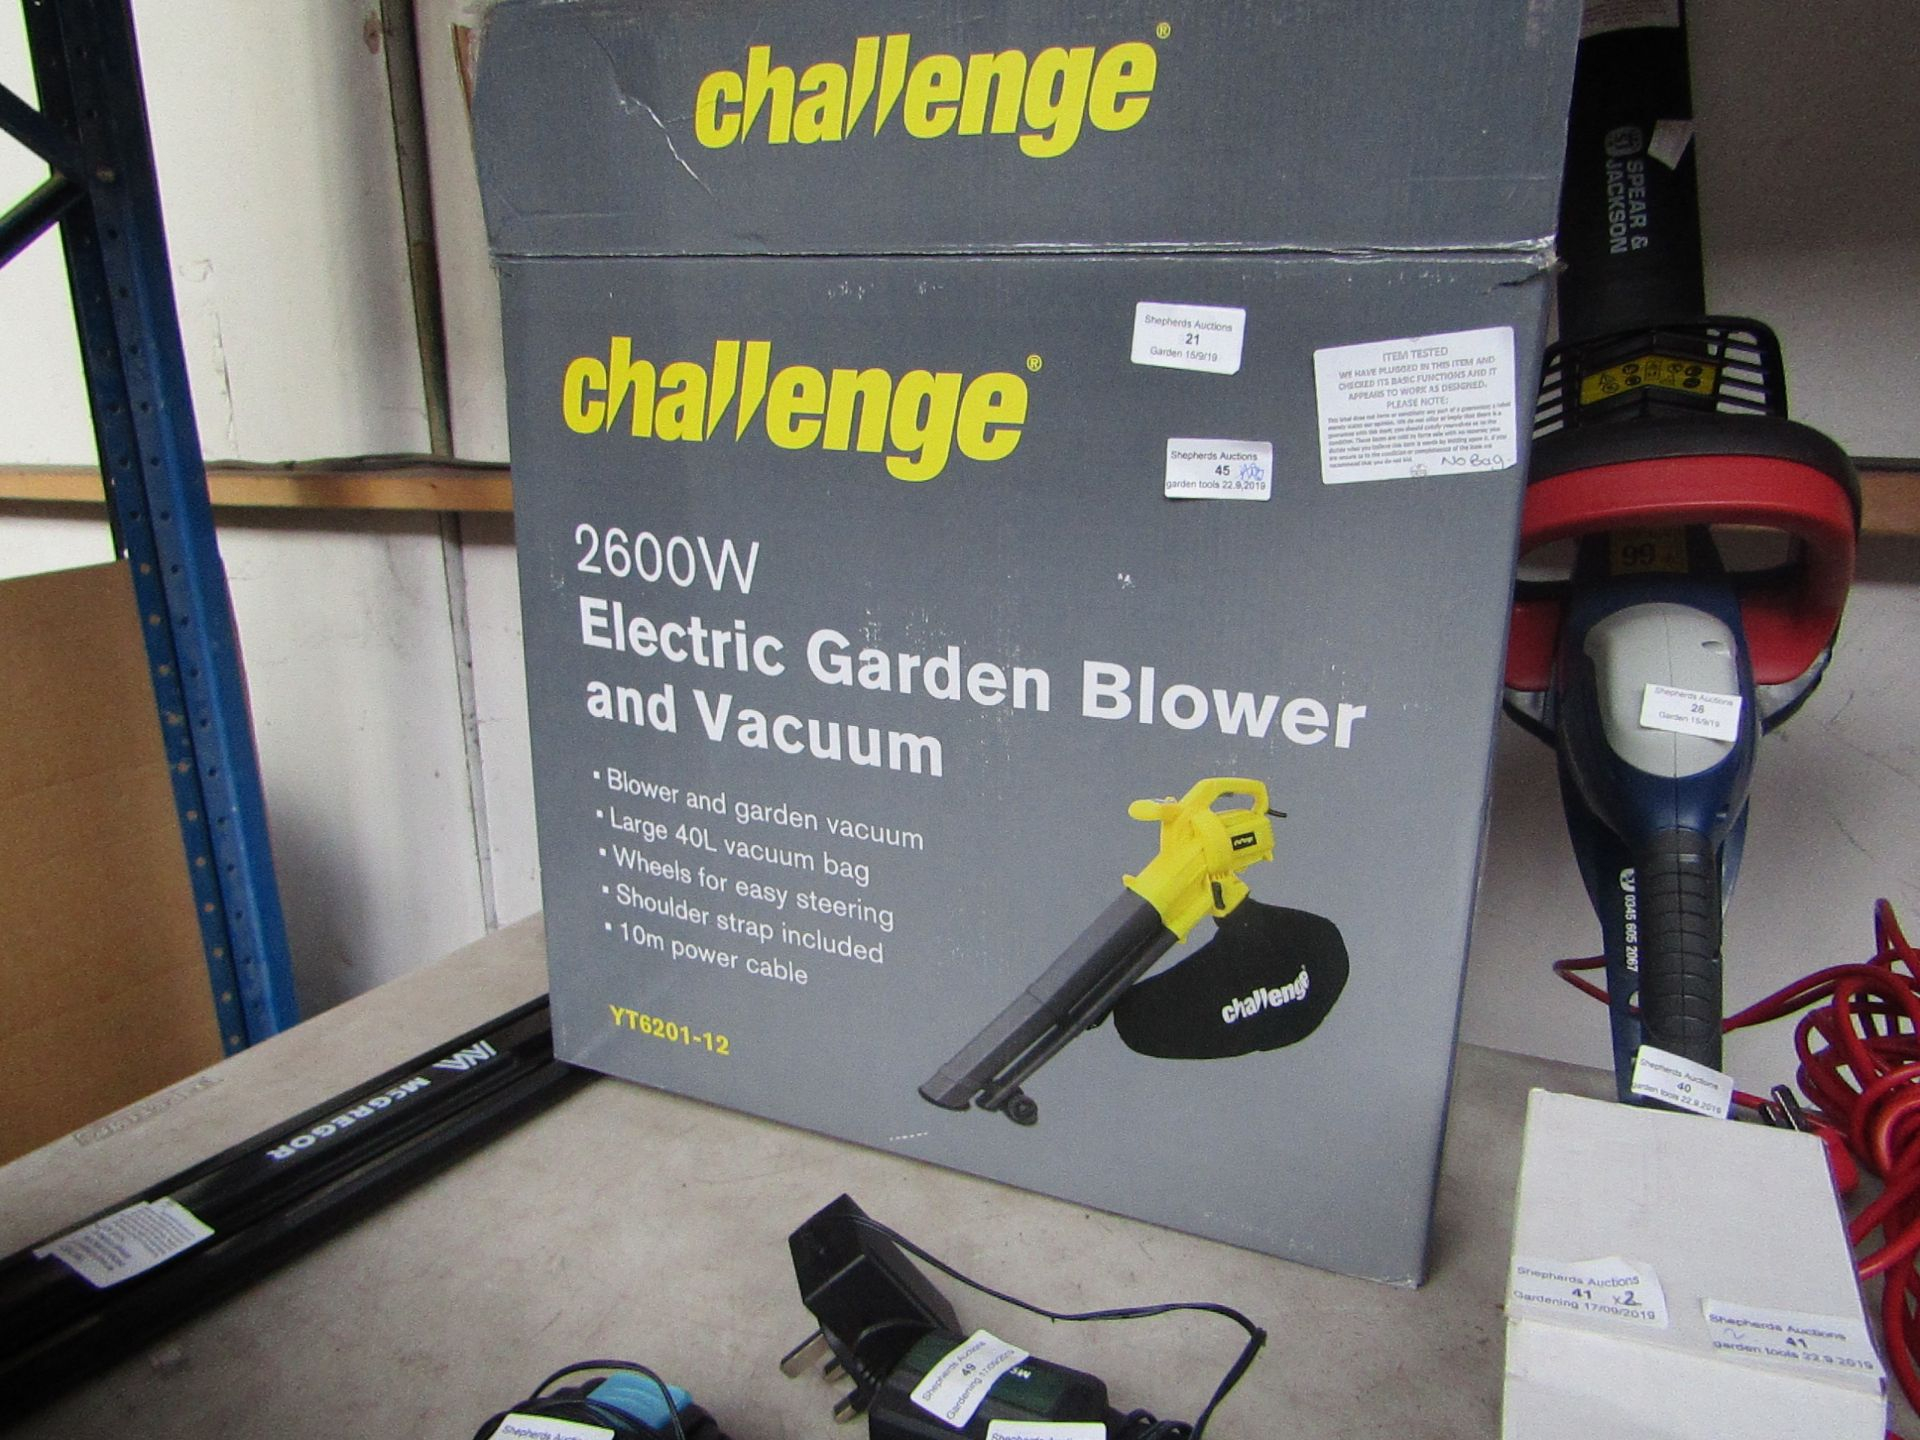 Lotto 45 - Challenge Electric Garden Blower/Vac, tested working and Boxed, RRP œ40